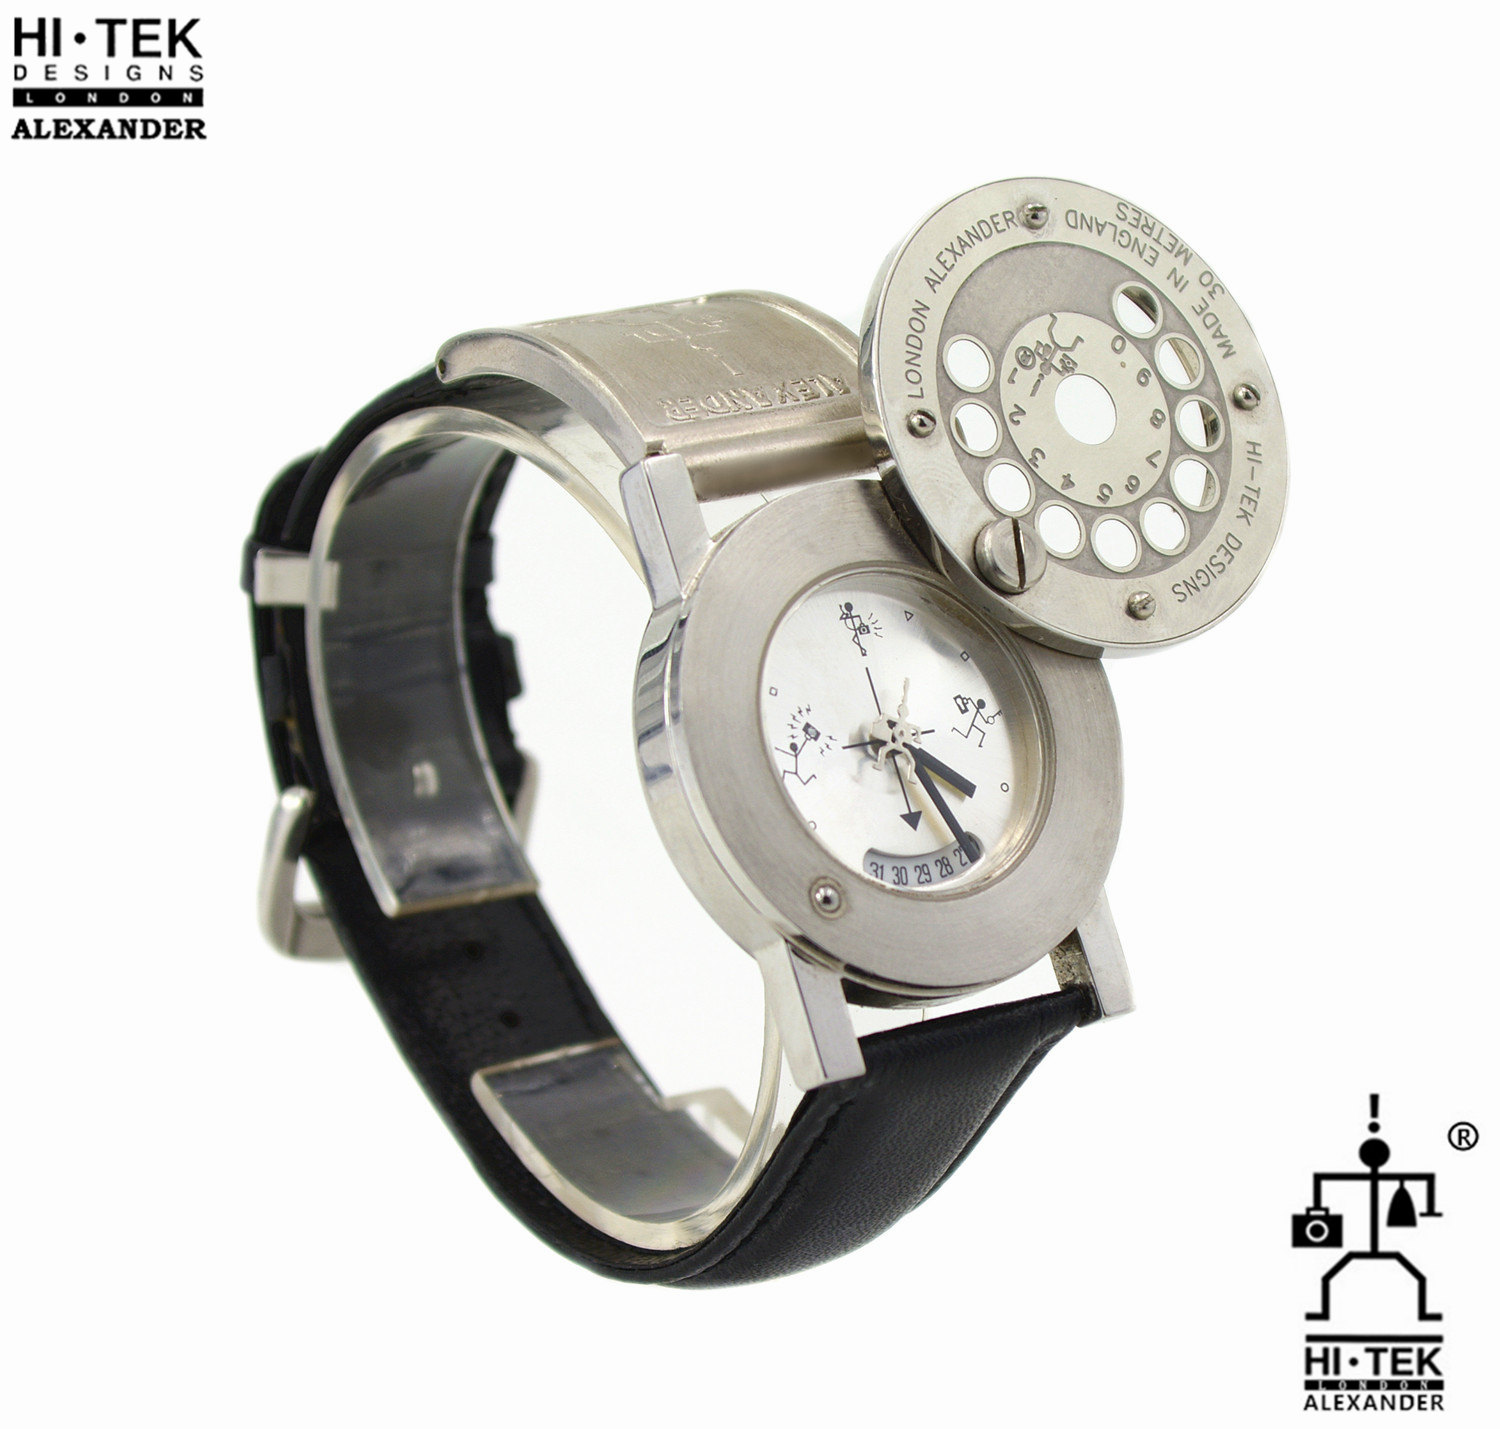 Hi Tek black leather goth steampunk retro futuristic unusual unisex wrist watch stainless steel case leather strap